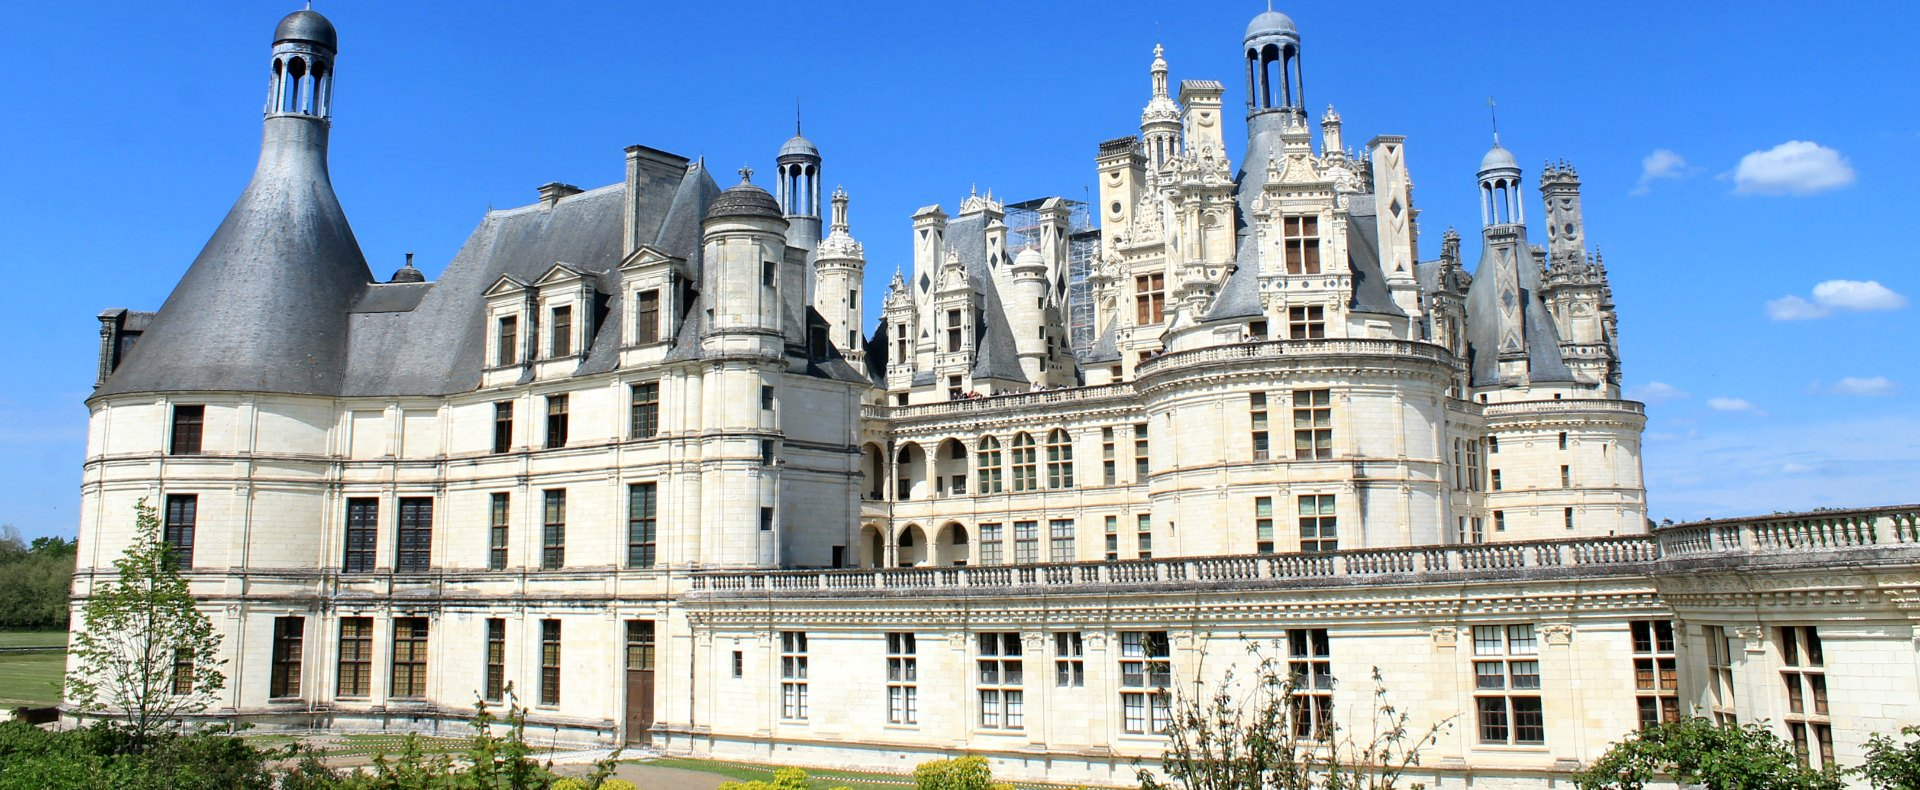 Loire valley Chateau Chambord